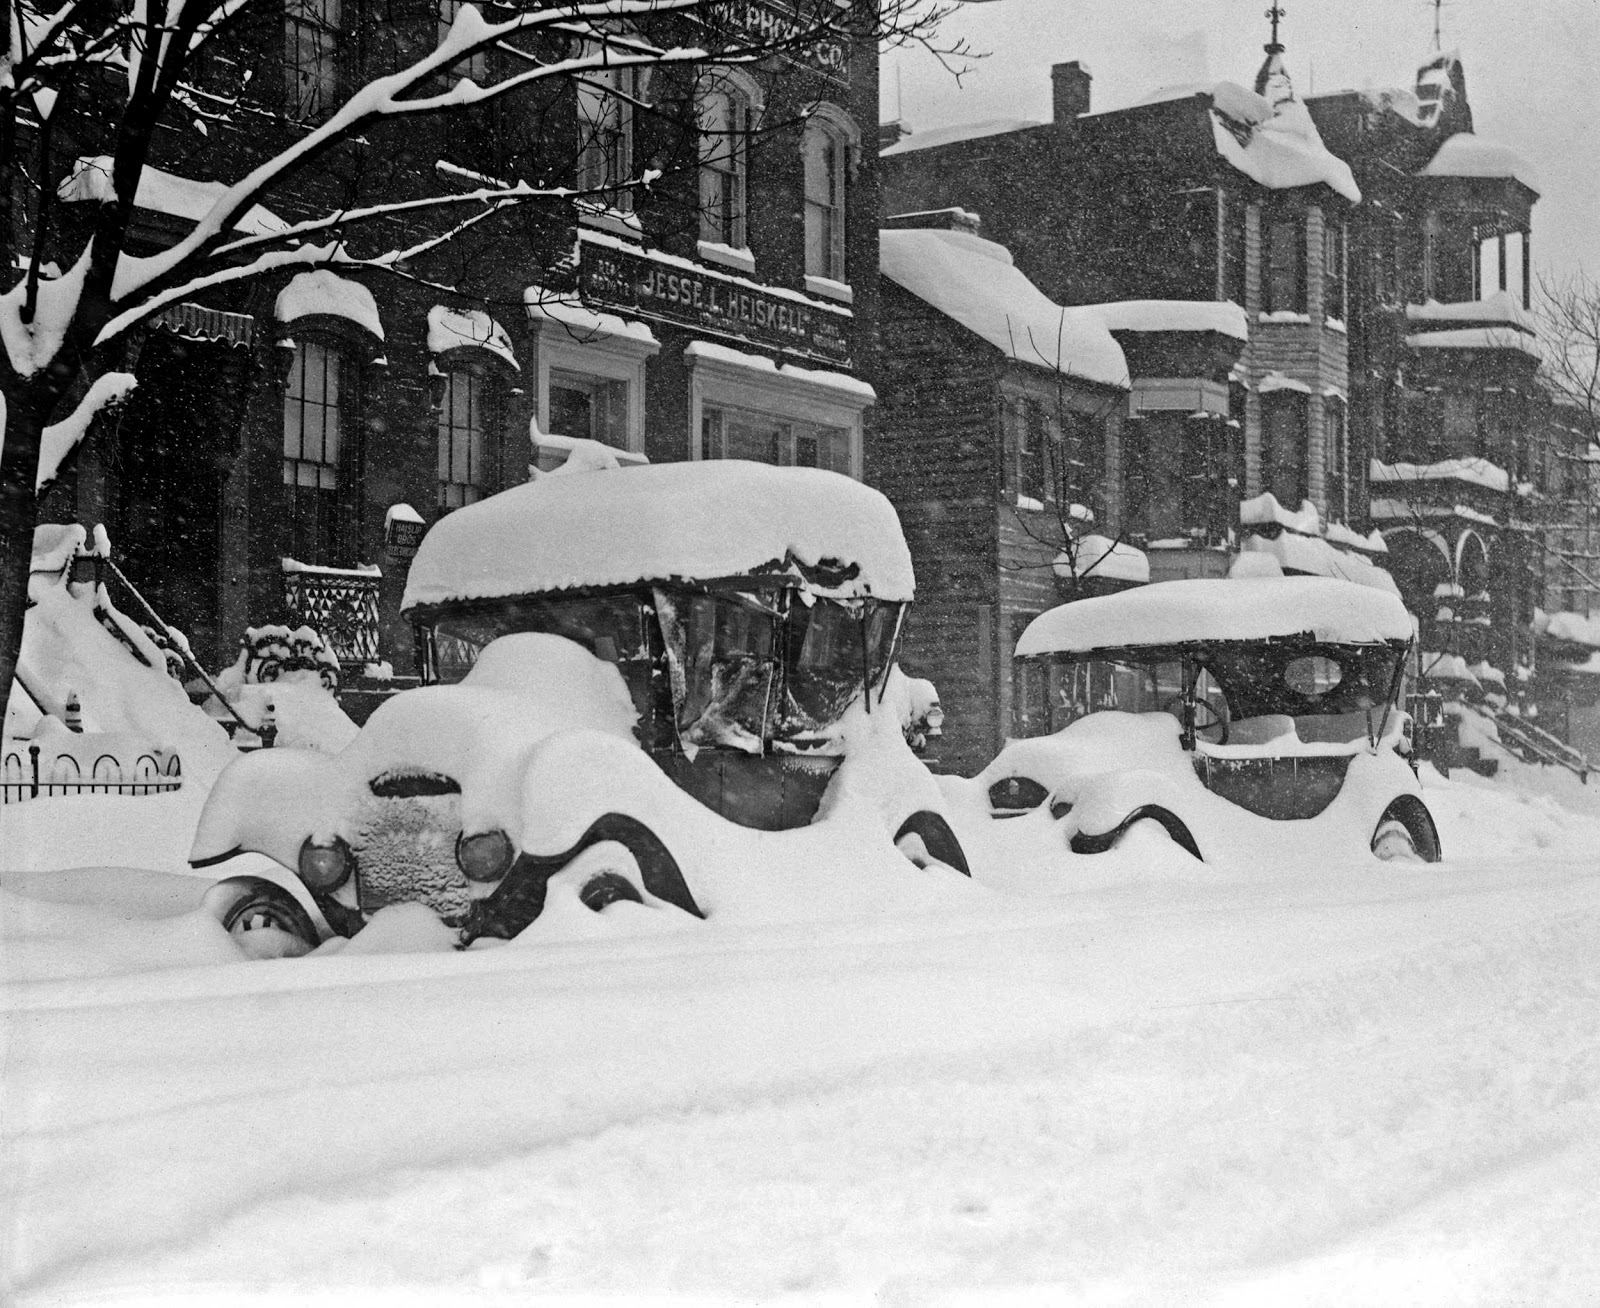 Automobiles Buried in Snow circa 1922